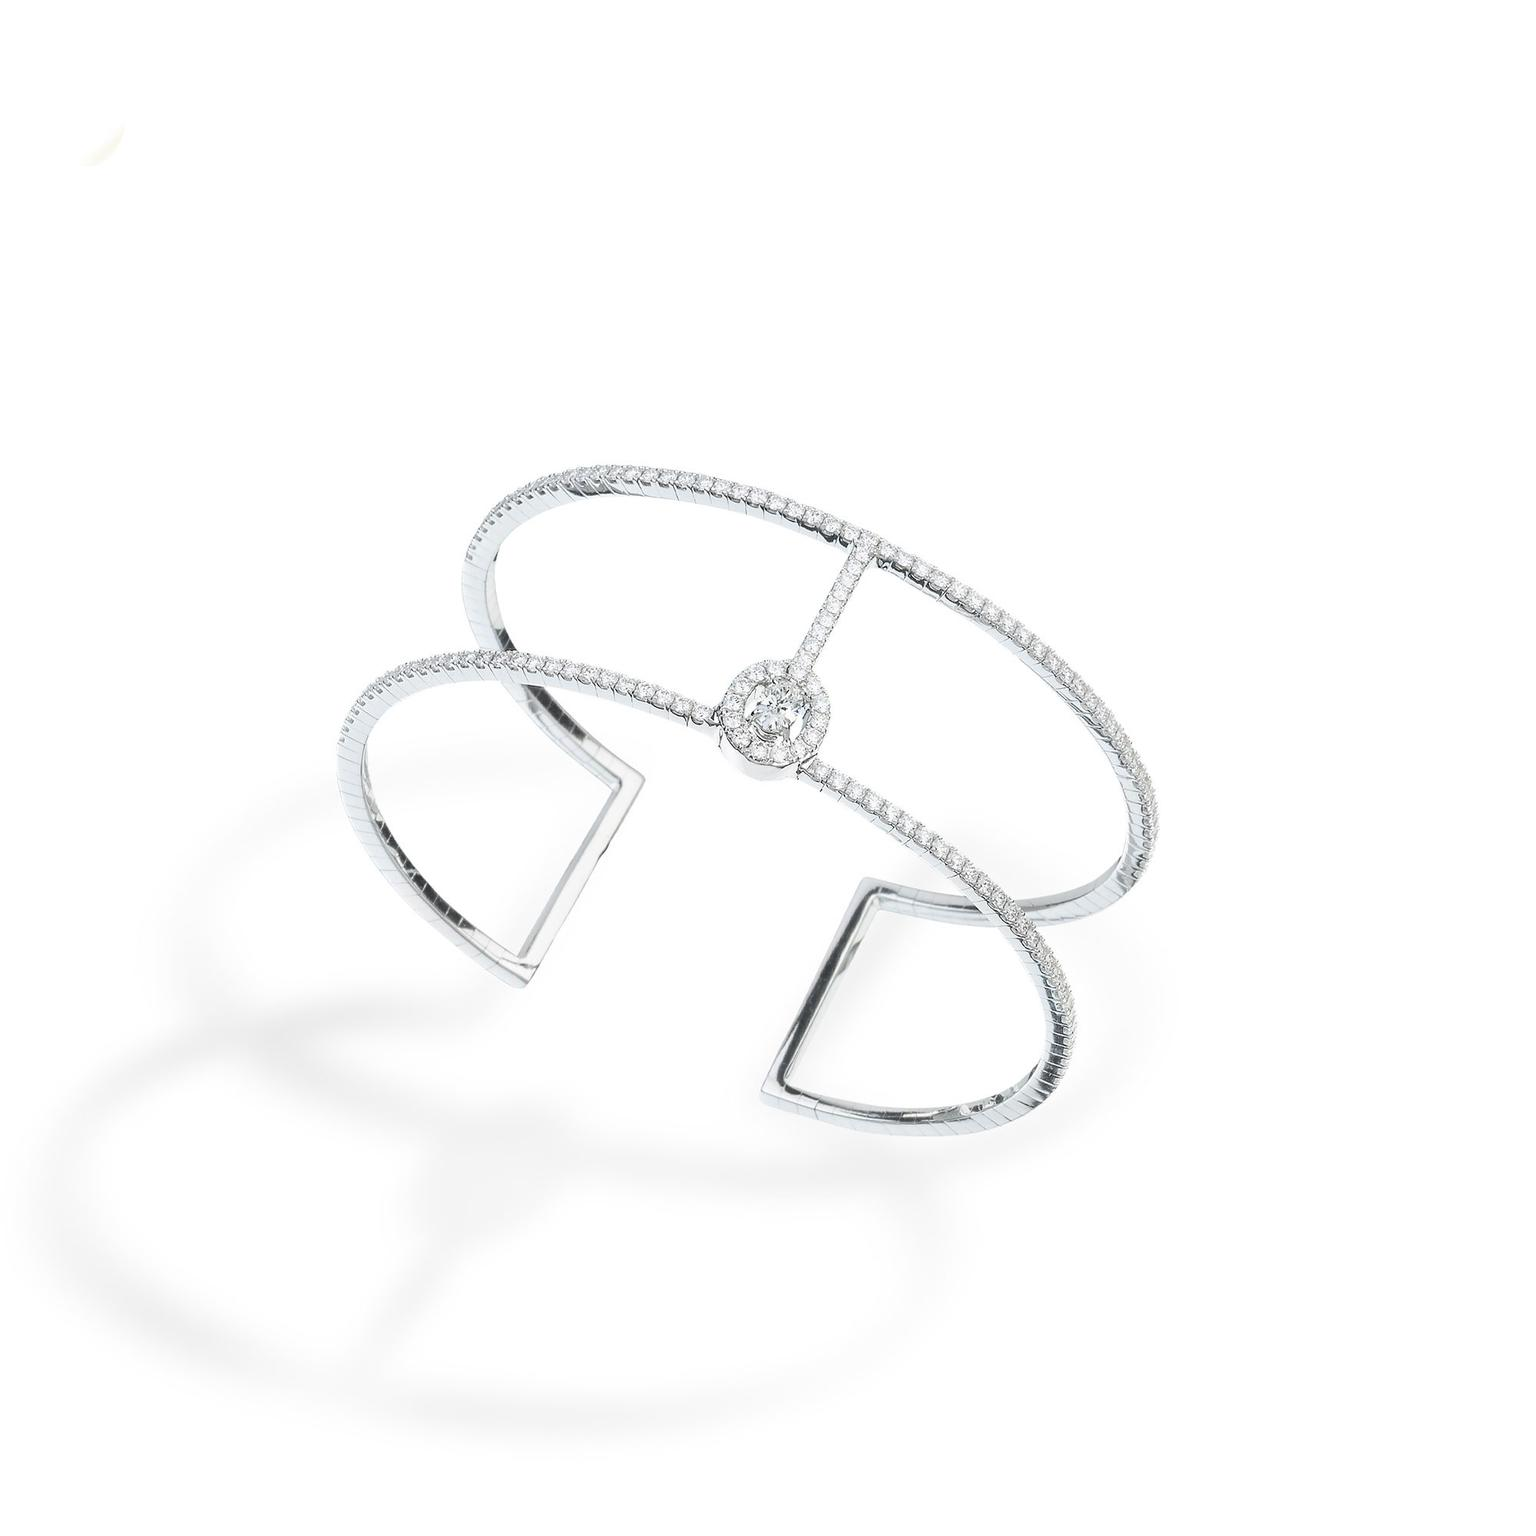 Messika Glam Azone white gold diamond cuff